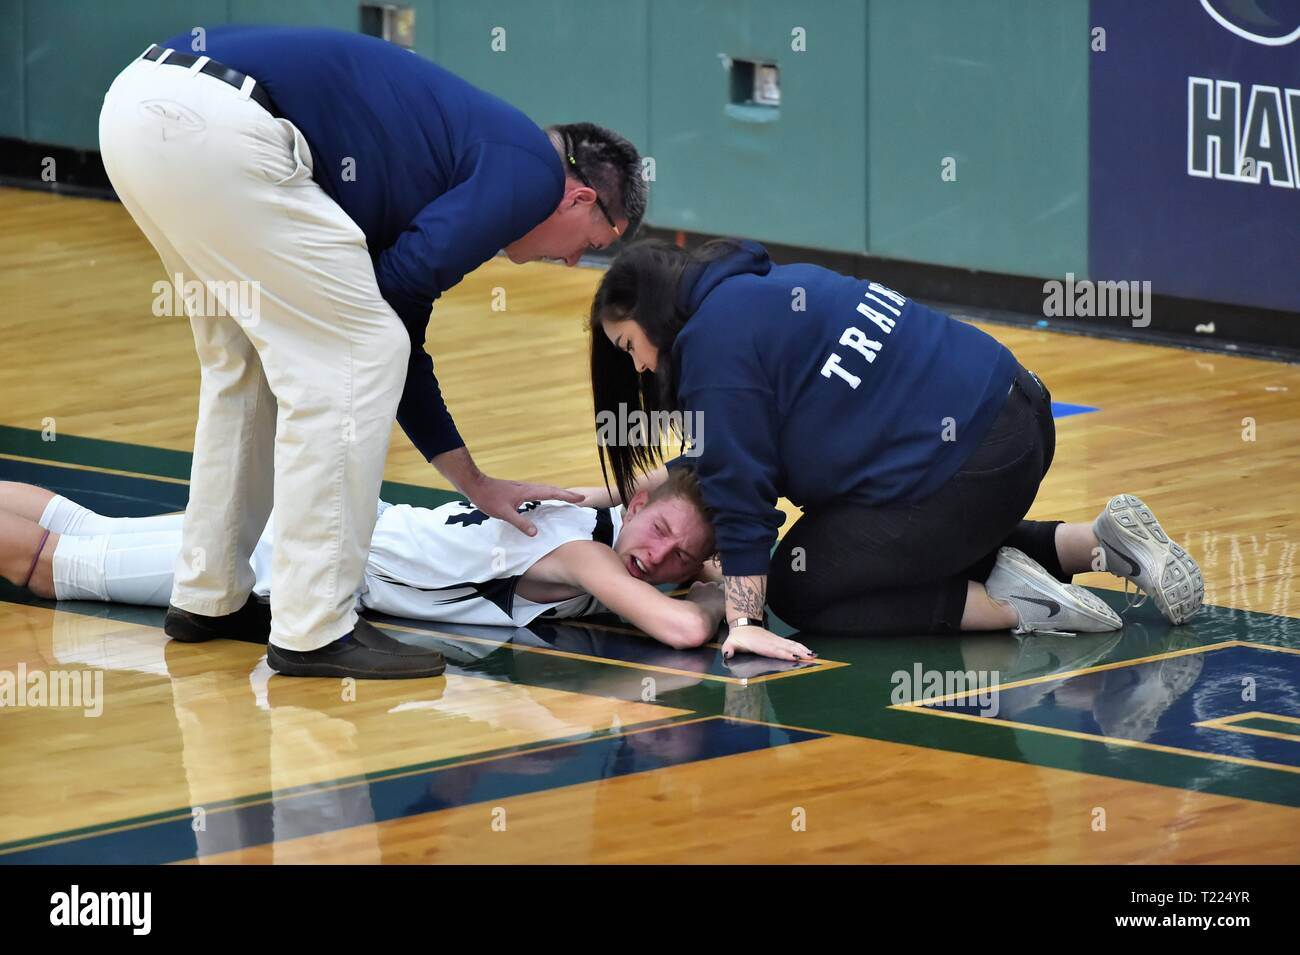 Coach an athletic trainer tend to an injured player on the gym floor. USA. - Stock Image